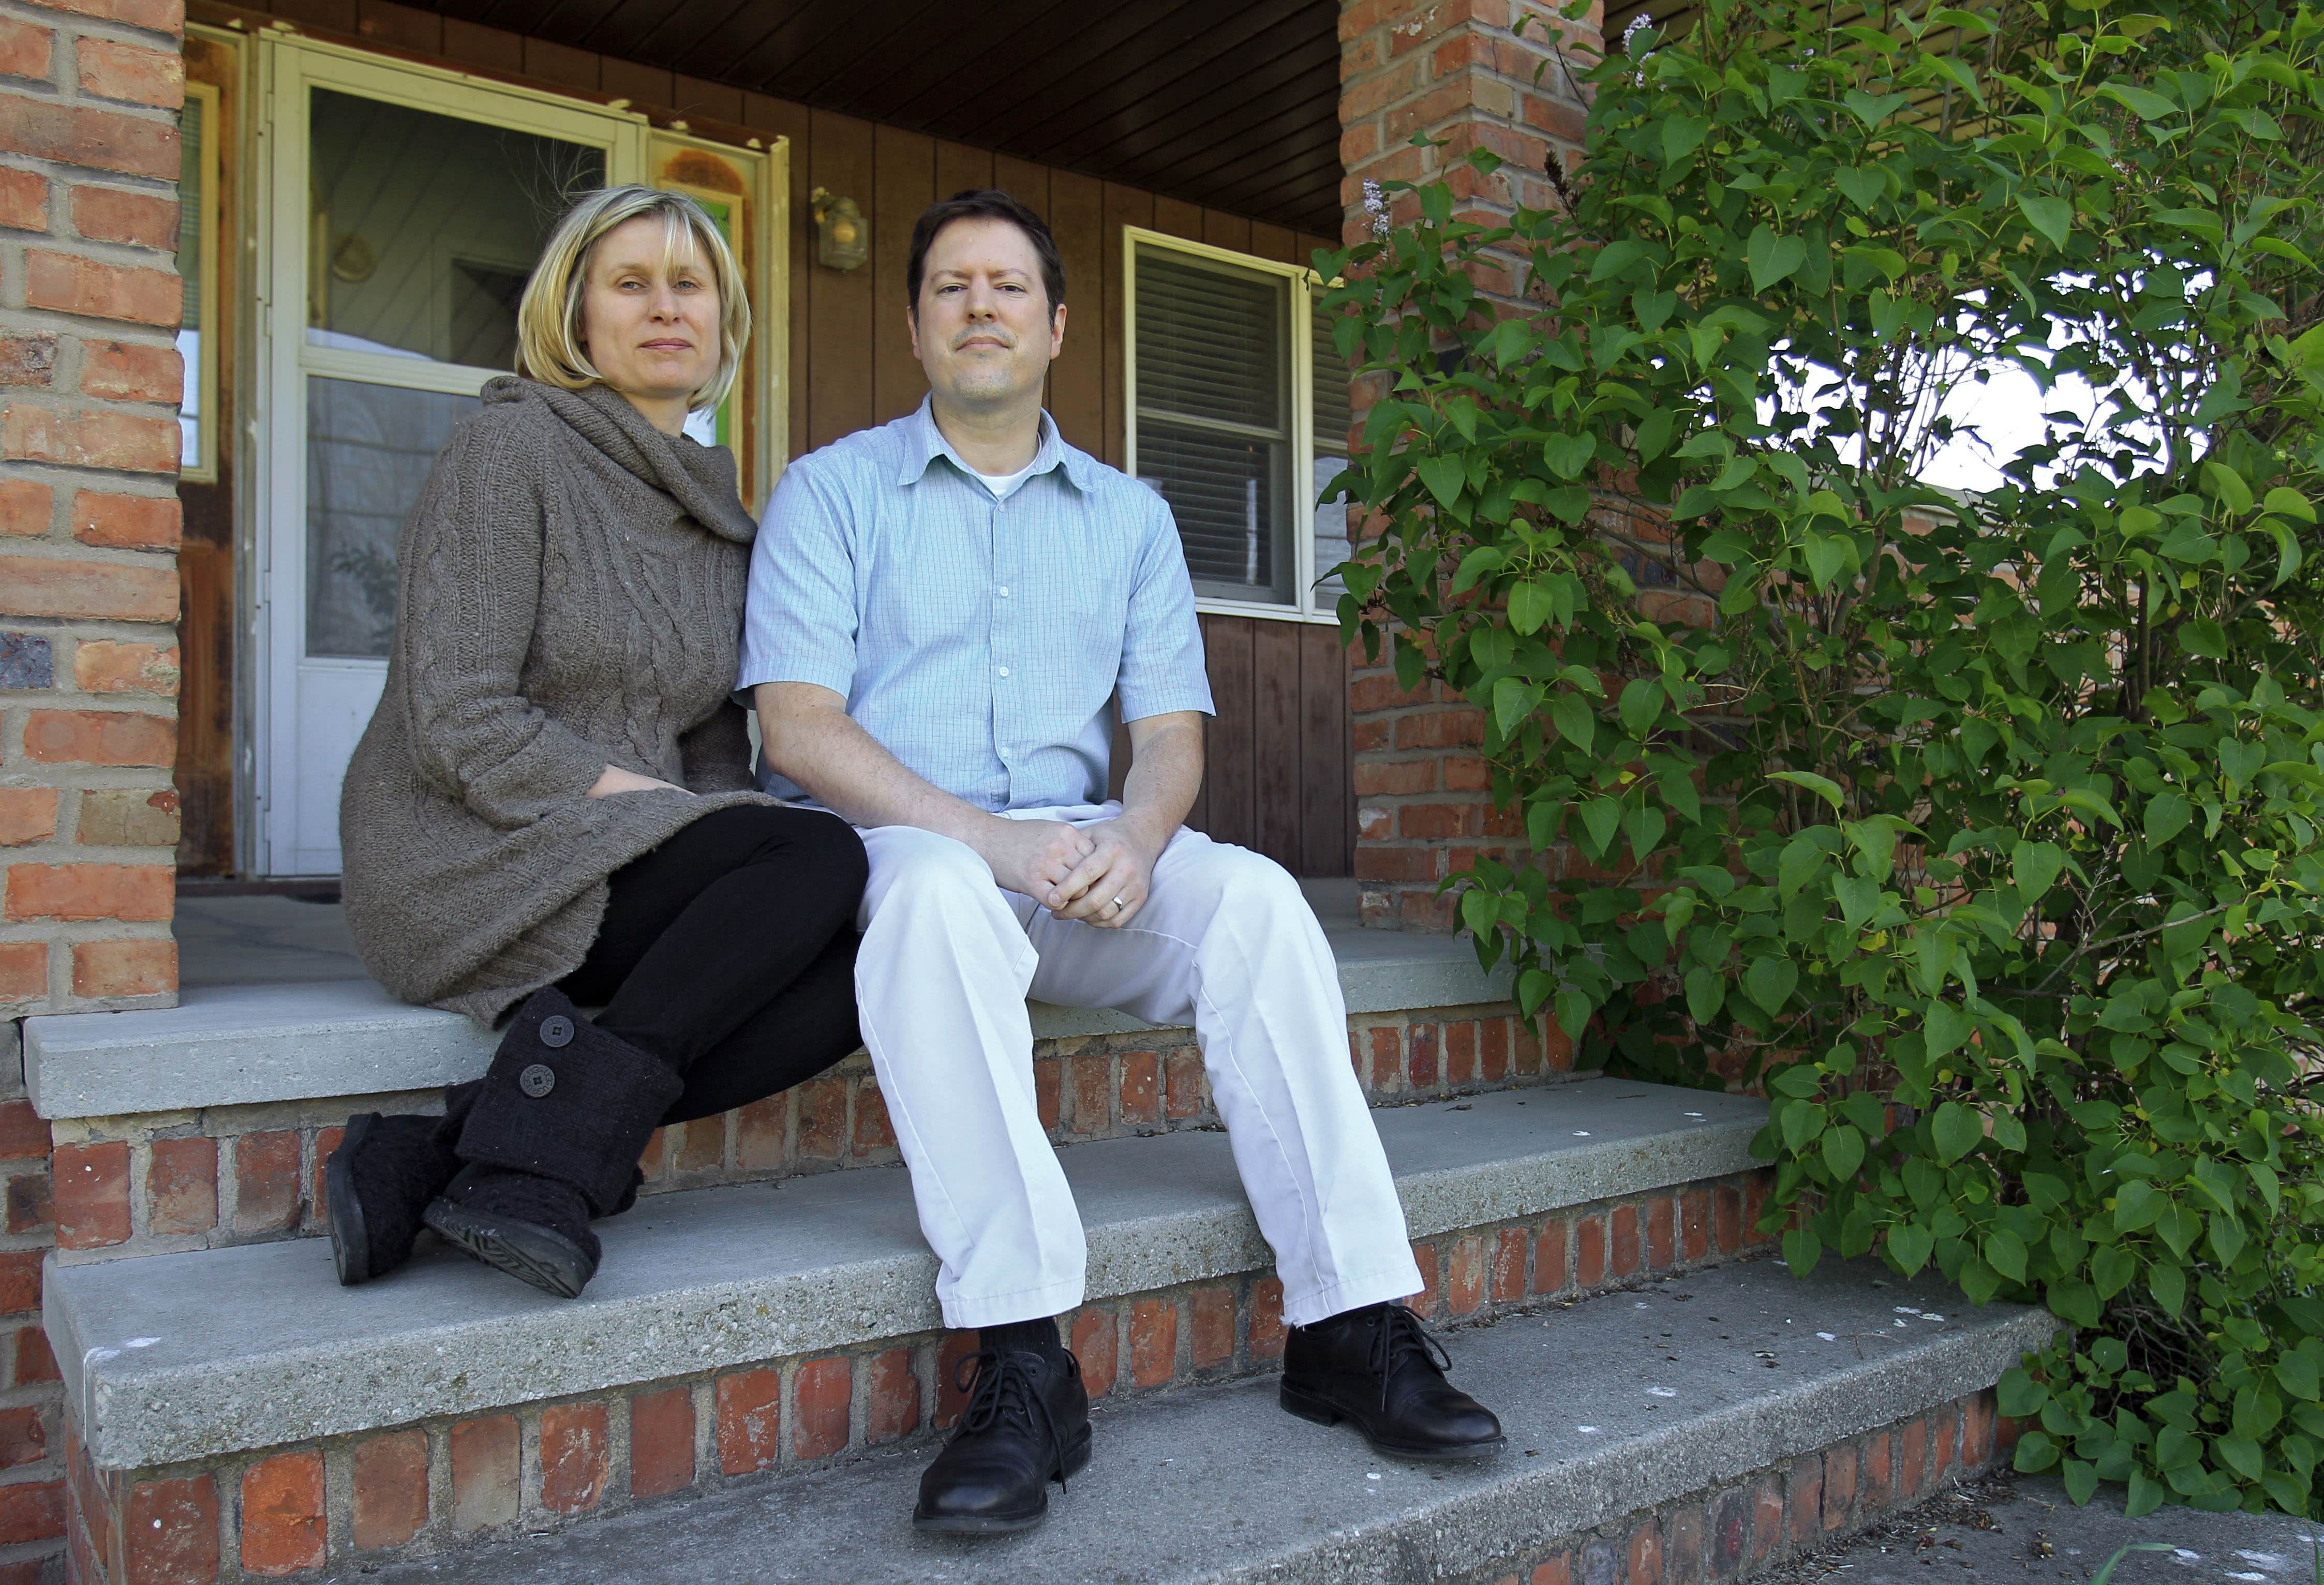 In this Tuesday, April 24, 2012 photo, Sarah and Devin Stang sit on the porch of the home they are renting in LaGrange, Ohio. The Stangs filed for bankruptcy and lost their Sandusky, Ohio home to foreclosure, but due to a 2005 law their student loan debts are still not dischargeable. (AP Photo/Mark Duncan)